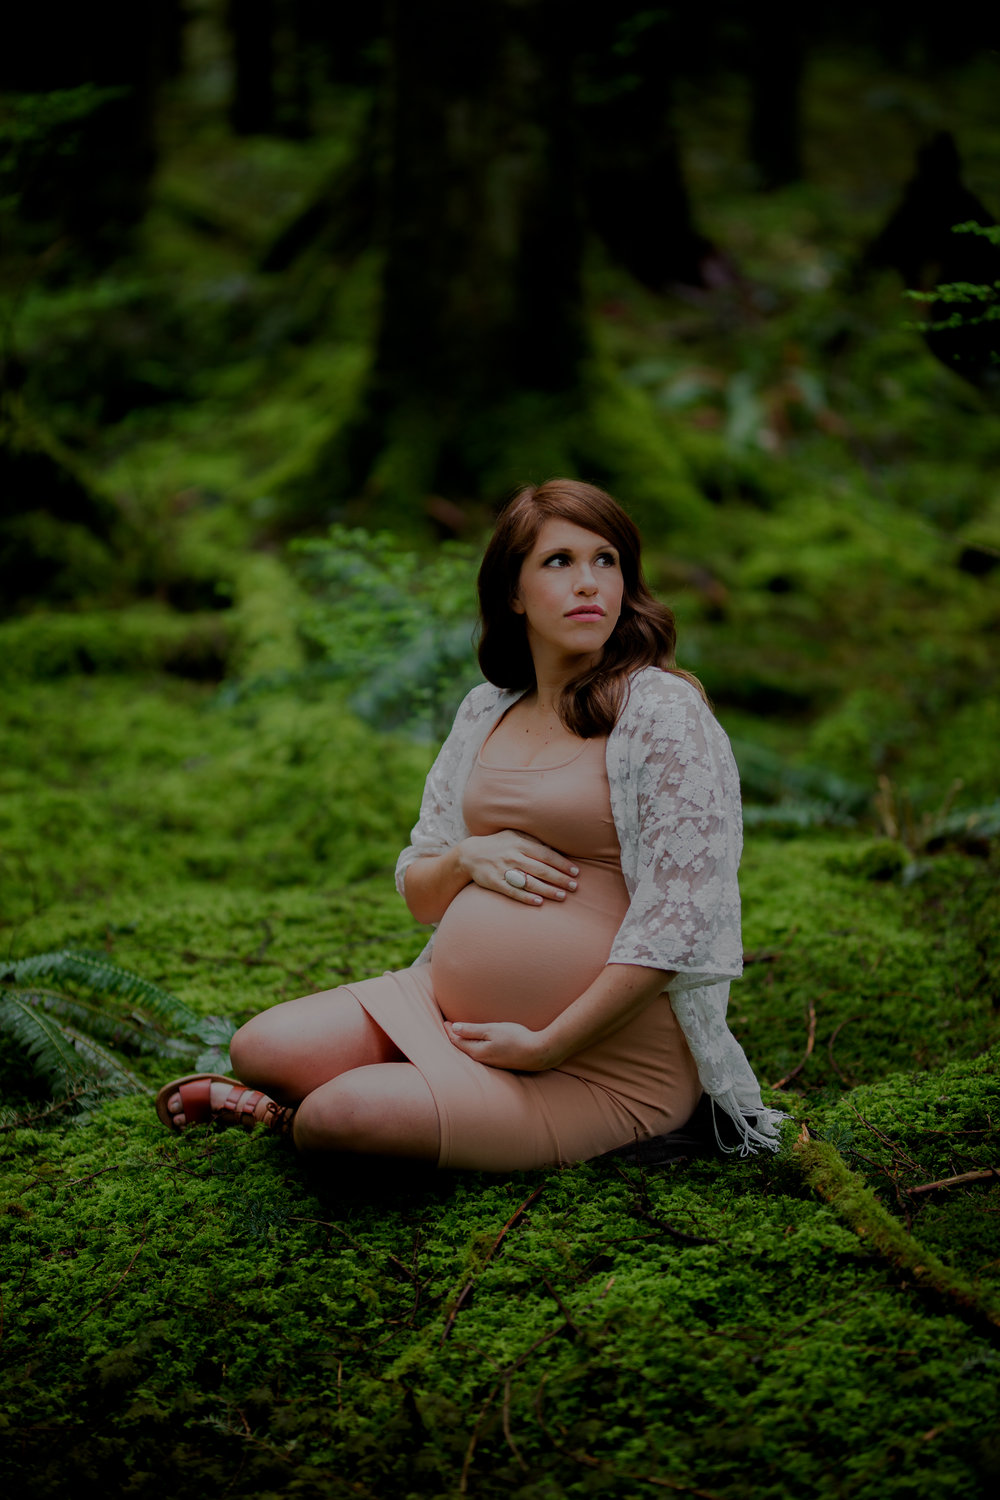 NadineHansenPhotography.Maternity Shoot in the luxurious west coast rainforest